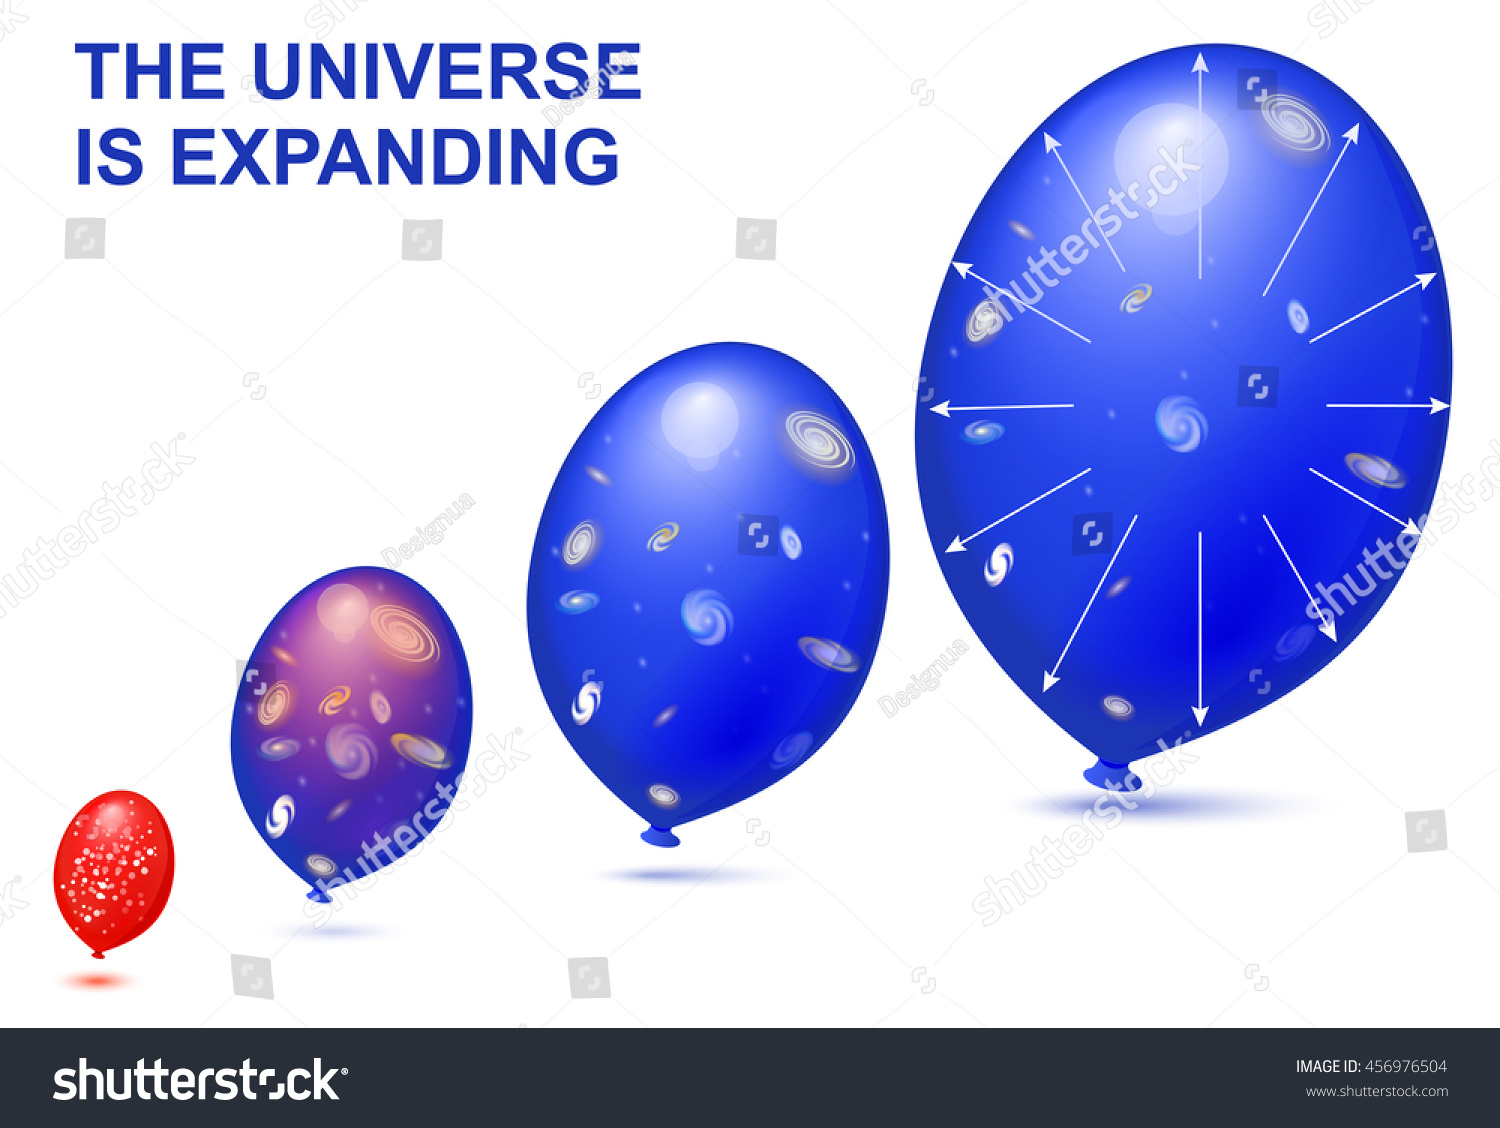 balloons demonstrates geometry expanding universe diagram flow diagram of the big bang theory flow diagram of the big bang theory flow diagram of the big bang theory flow diagram of the big bang theory